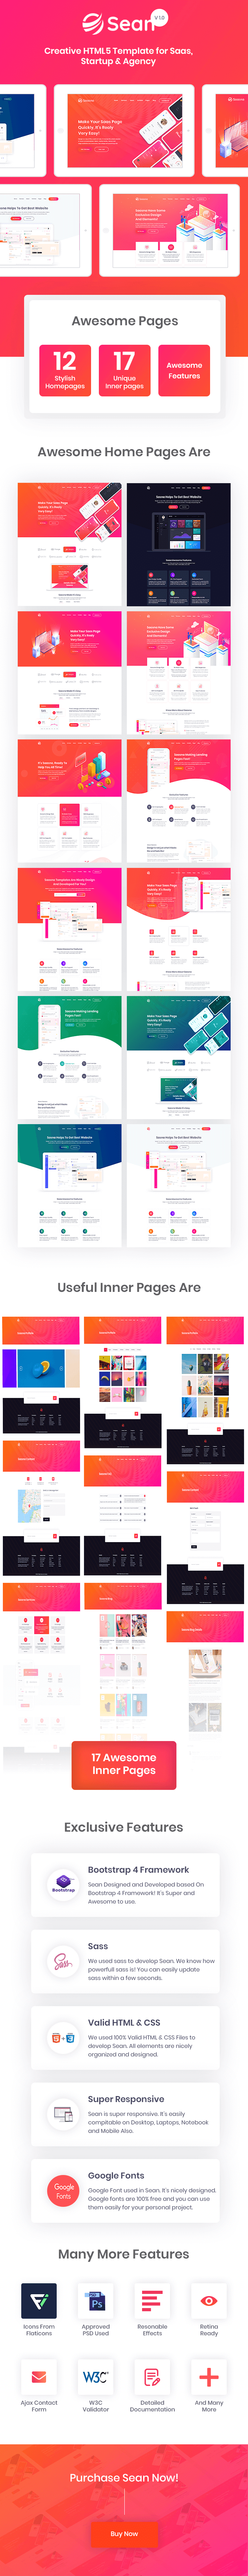 Sean - Saas, Software & App Landing Page HTML Template - 2